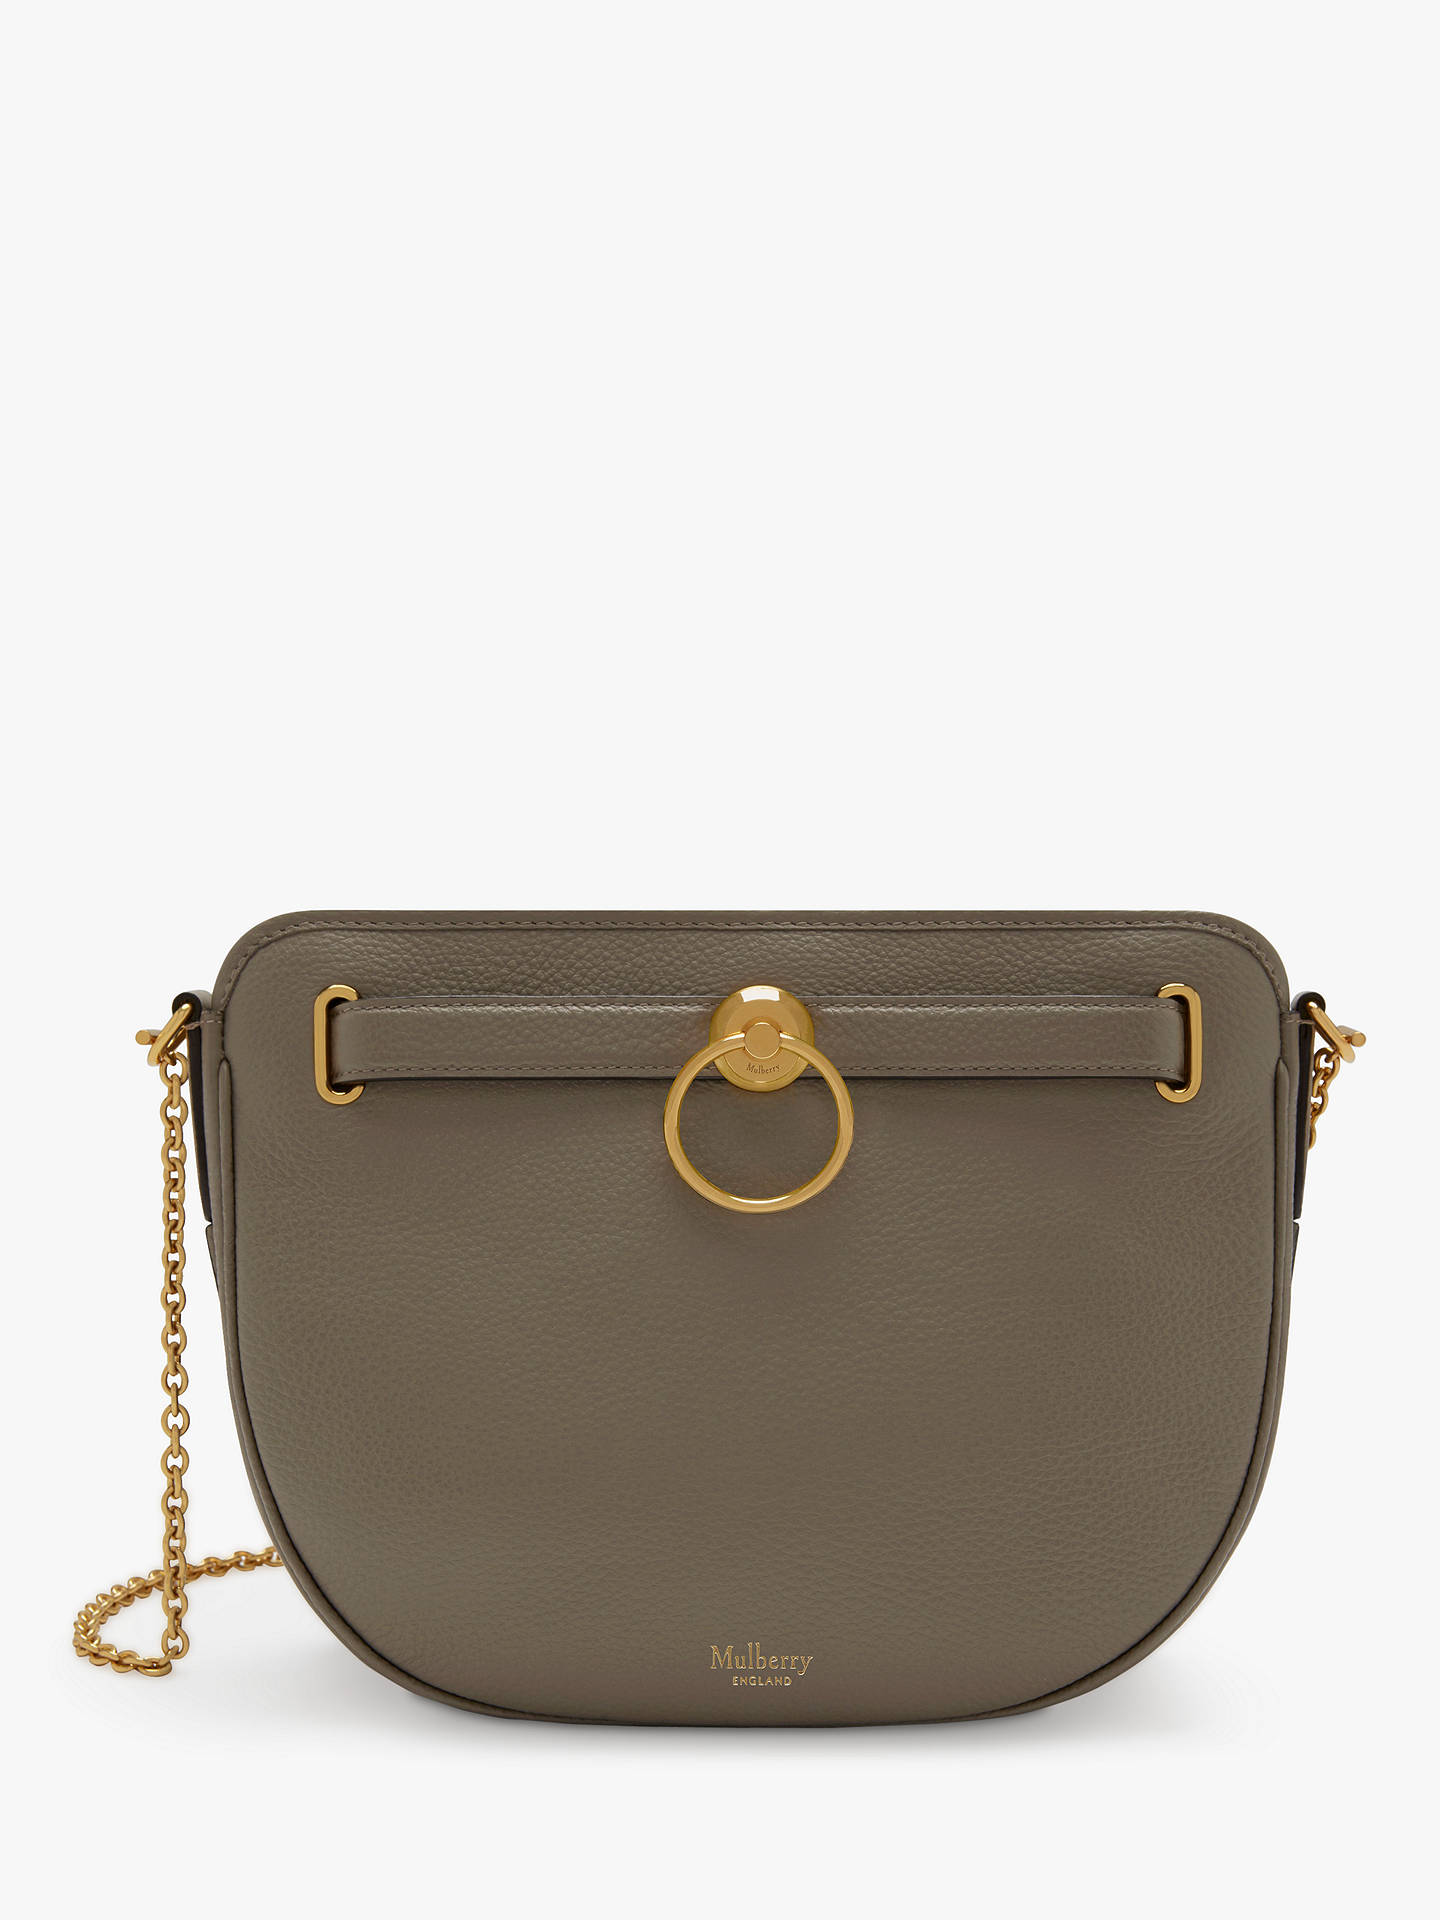 Mulberry Brockwell Small Classic Grain Leather Satchel Bag at John ... 619af96c40e9d